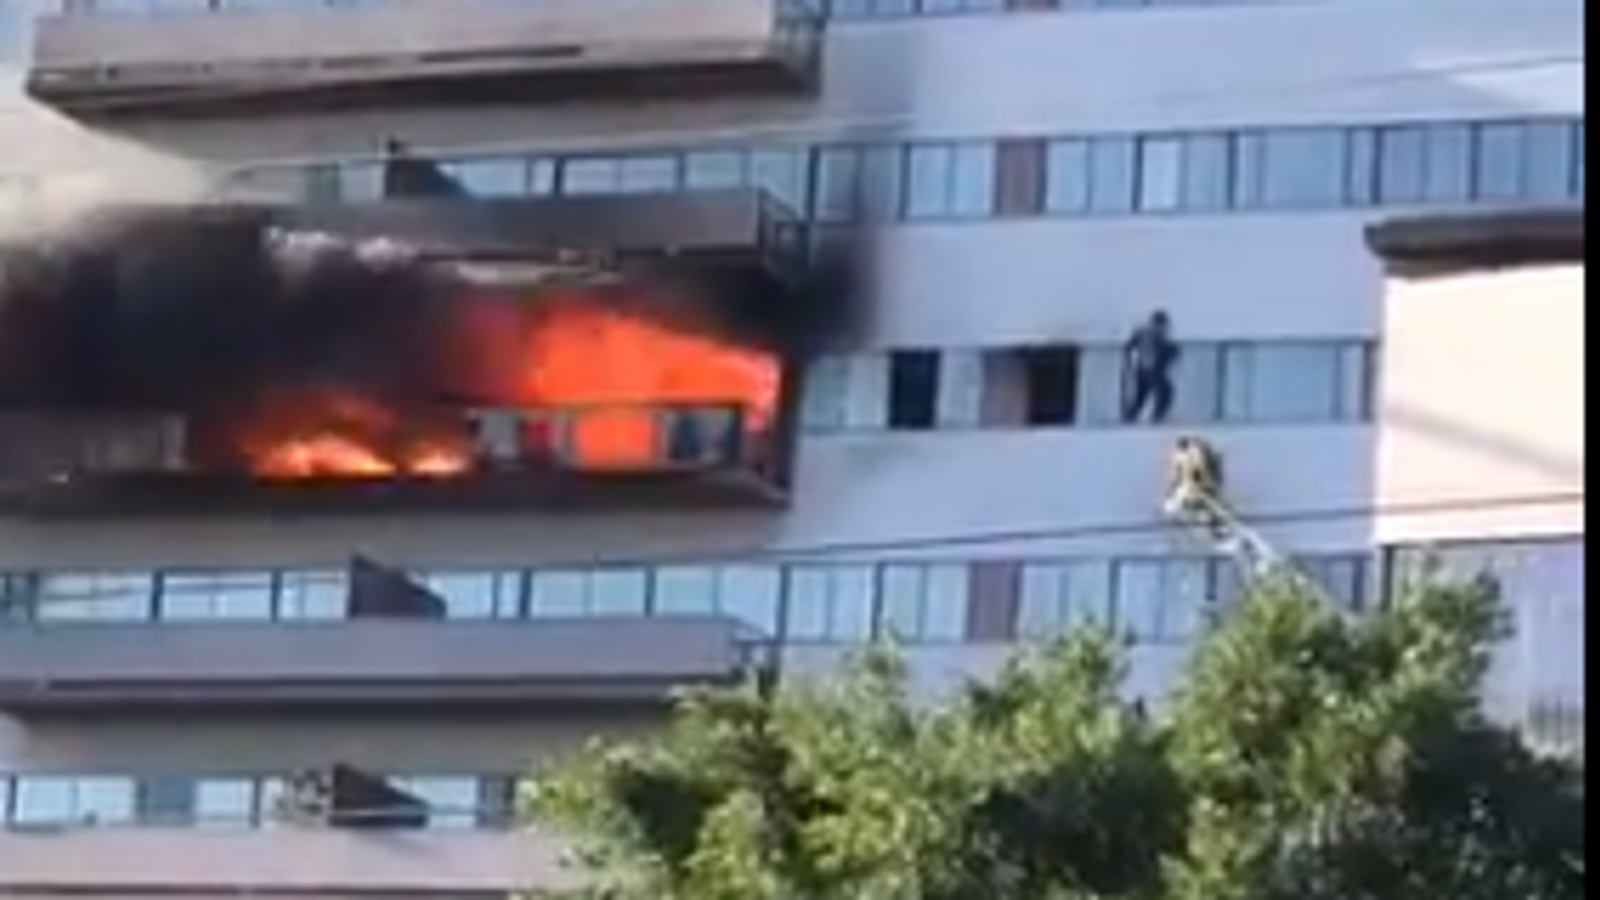 LA high-rise building on fire - amid reports residents 'forced to jump'